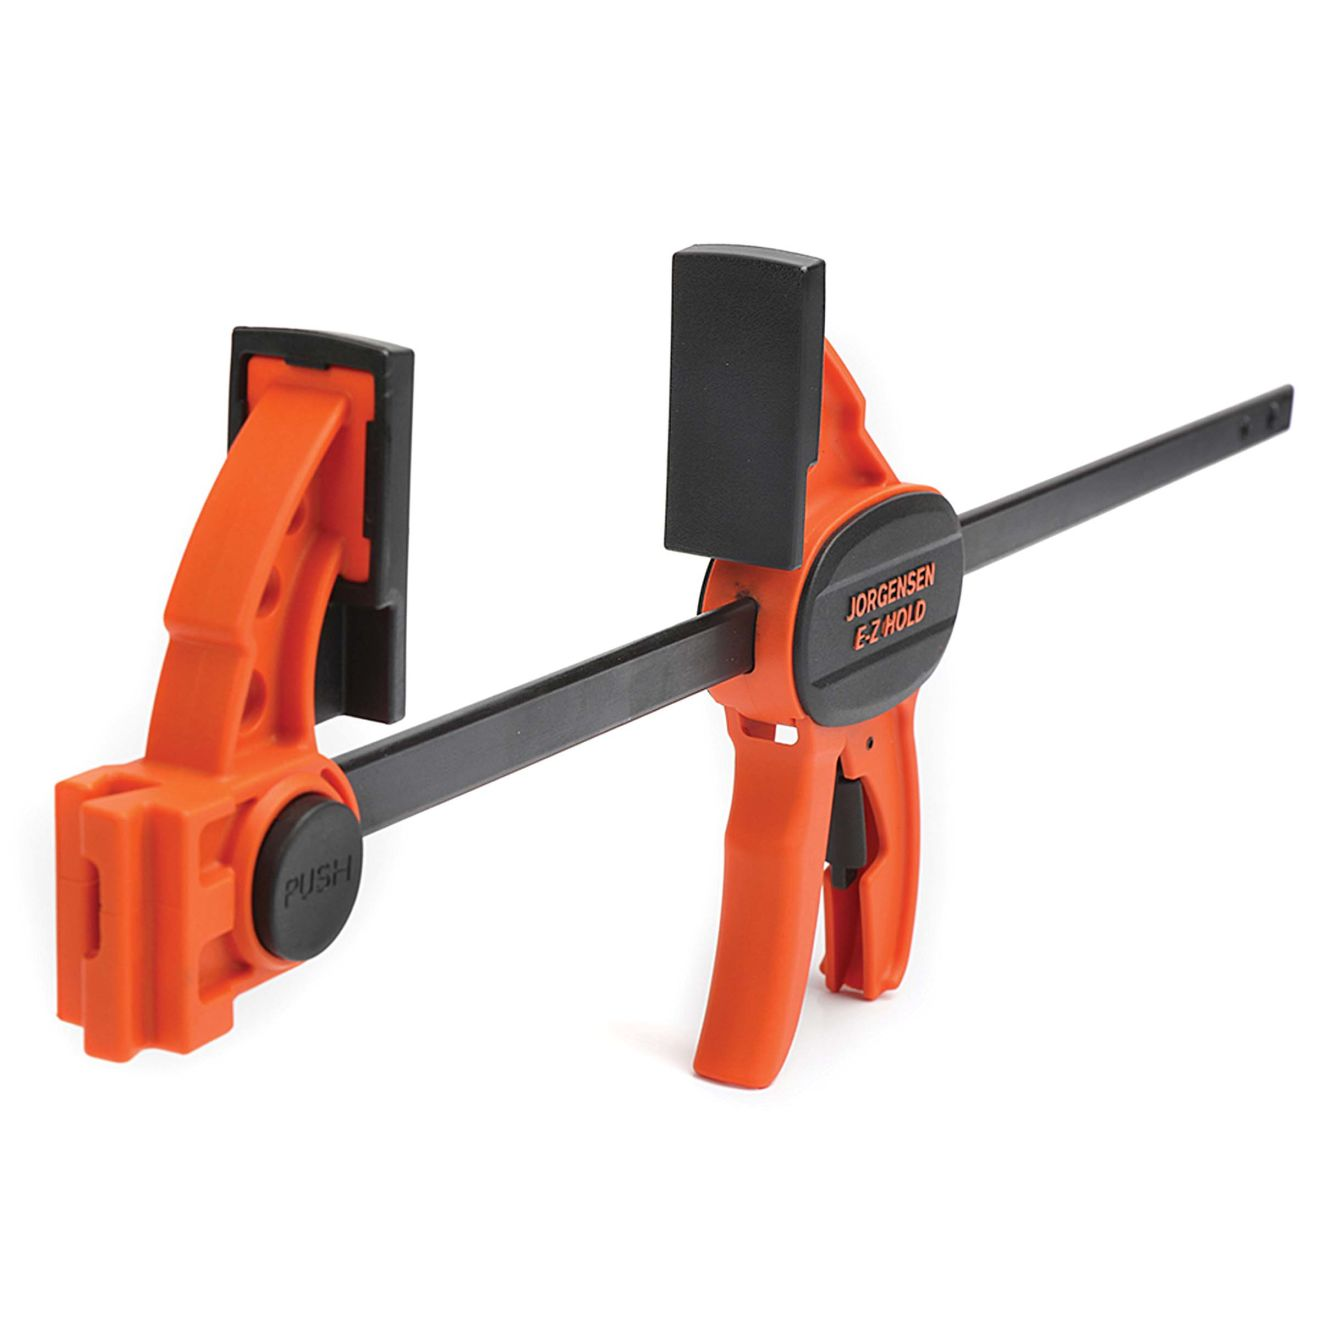 Jorgensen 12 in. E-Z Hold Expandable Bar Clamp with 2-1/2 in. Reach